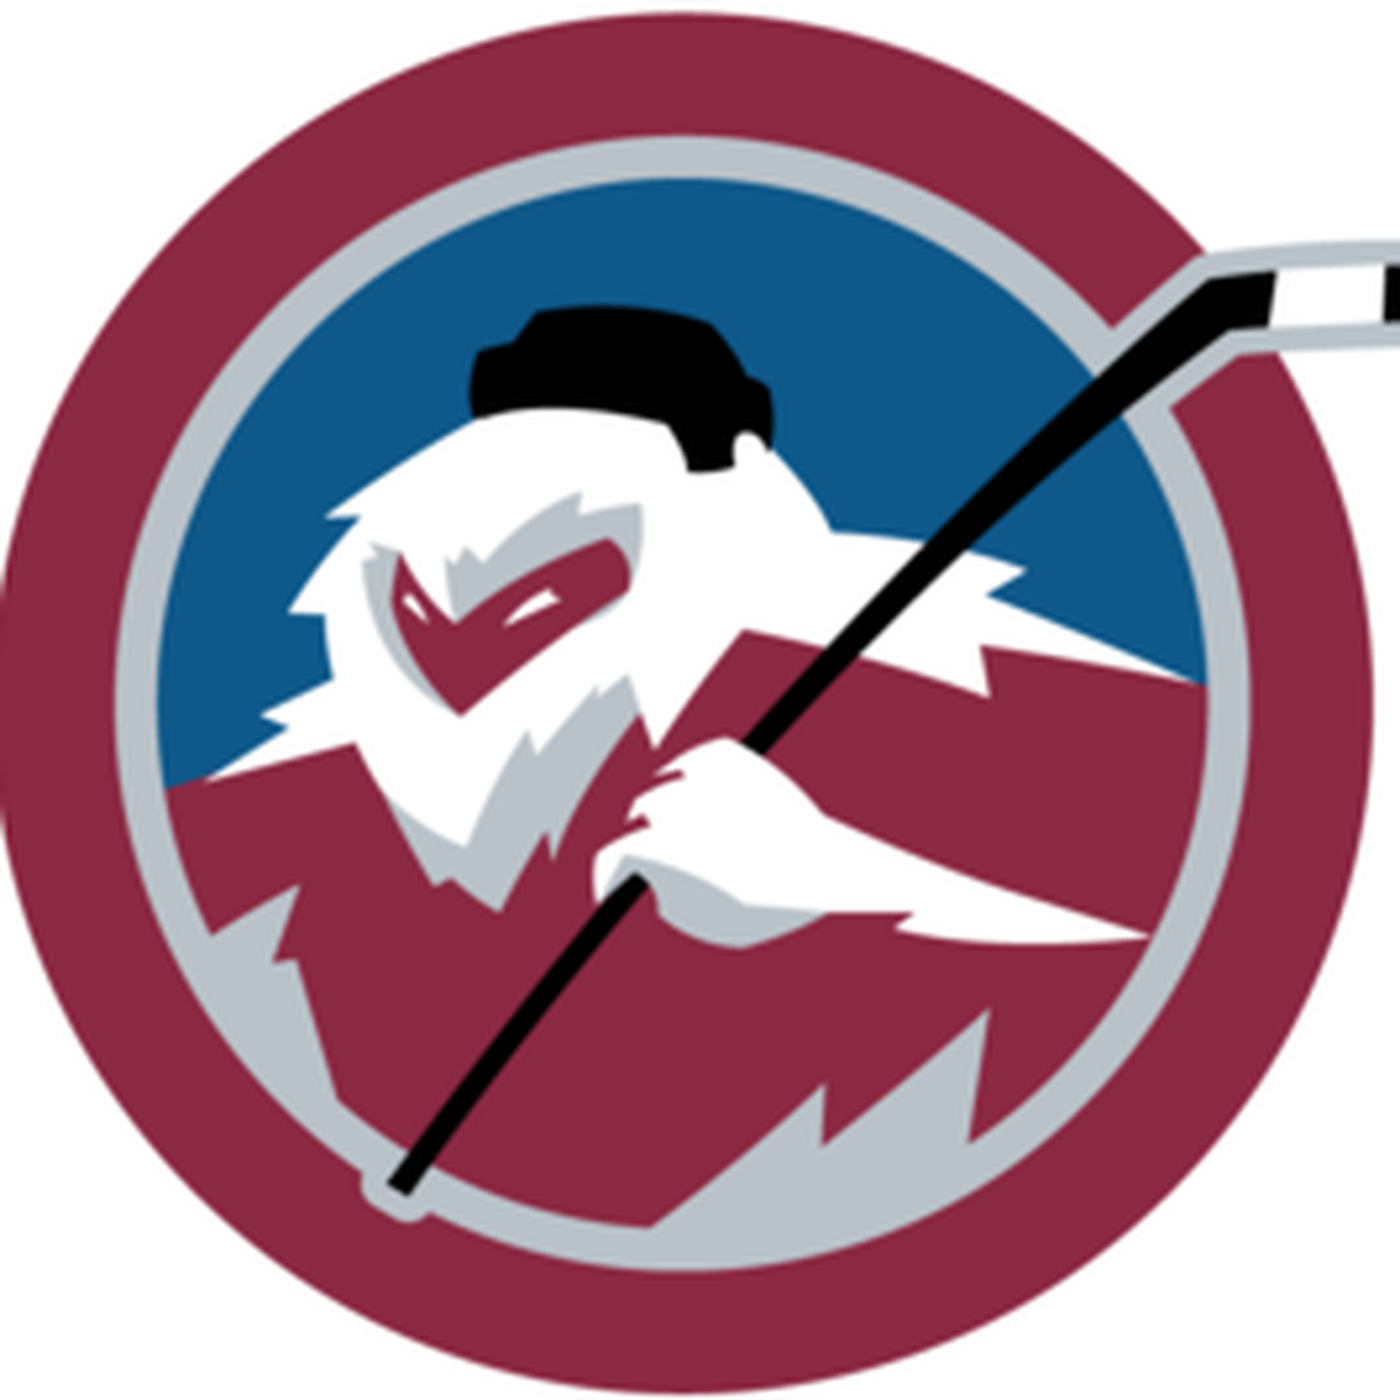 Nervous clipart trepidation. Avalanche blows it with